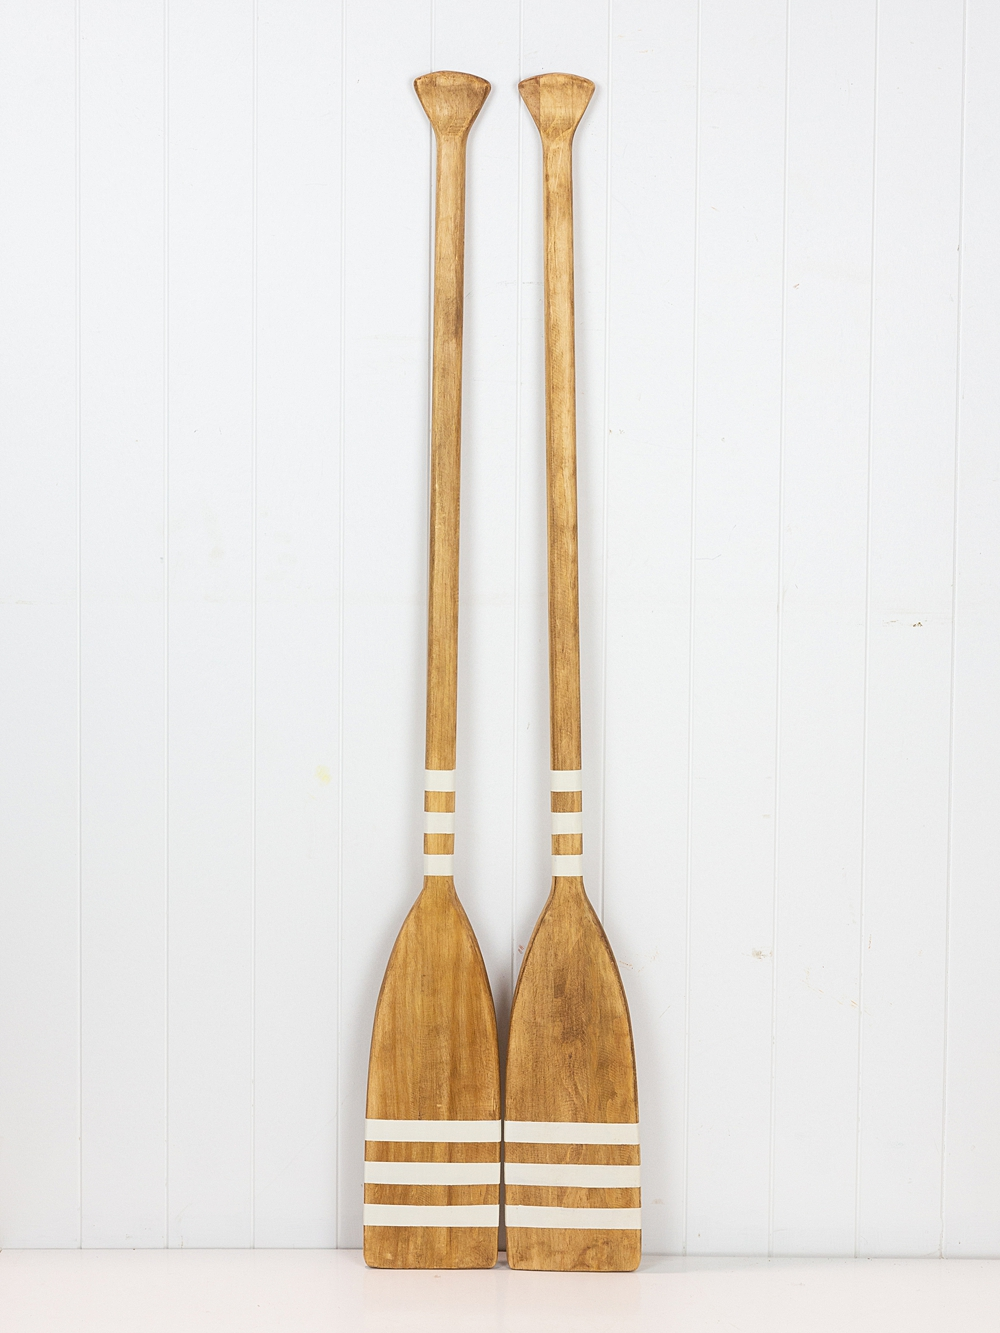 Broome Paddles